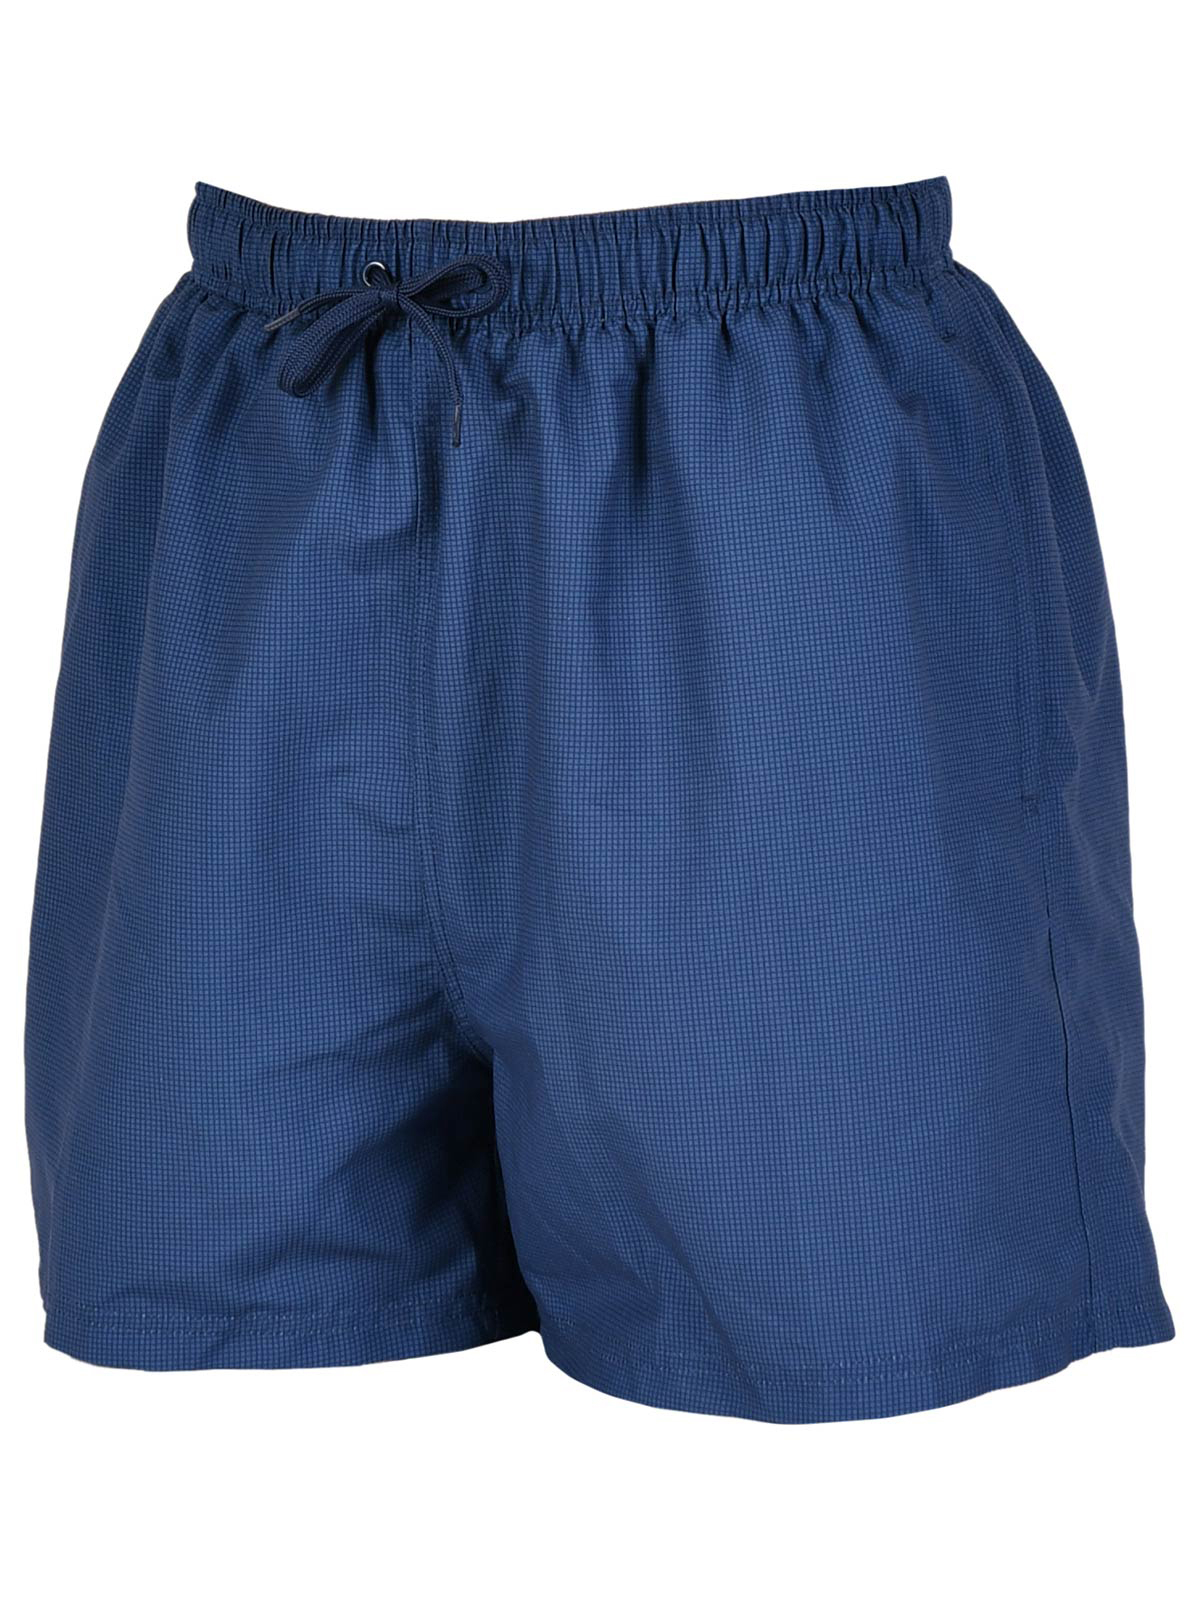 NATURANA Men's Swim Shorts 74836